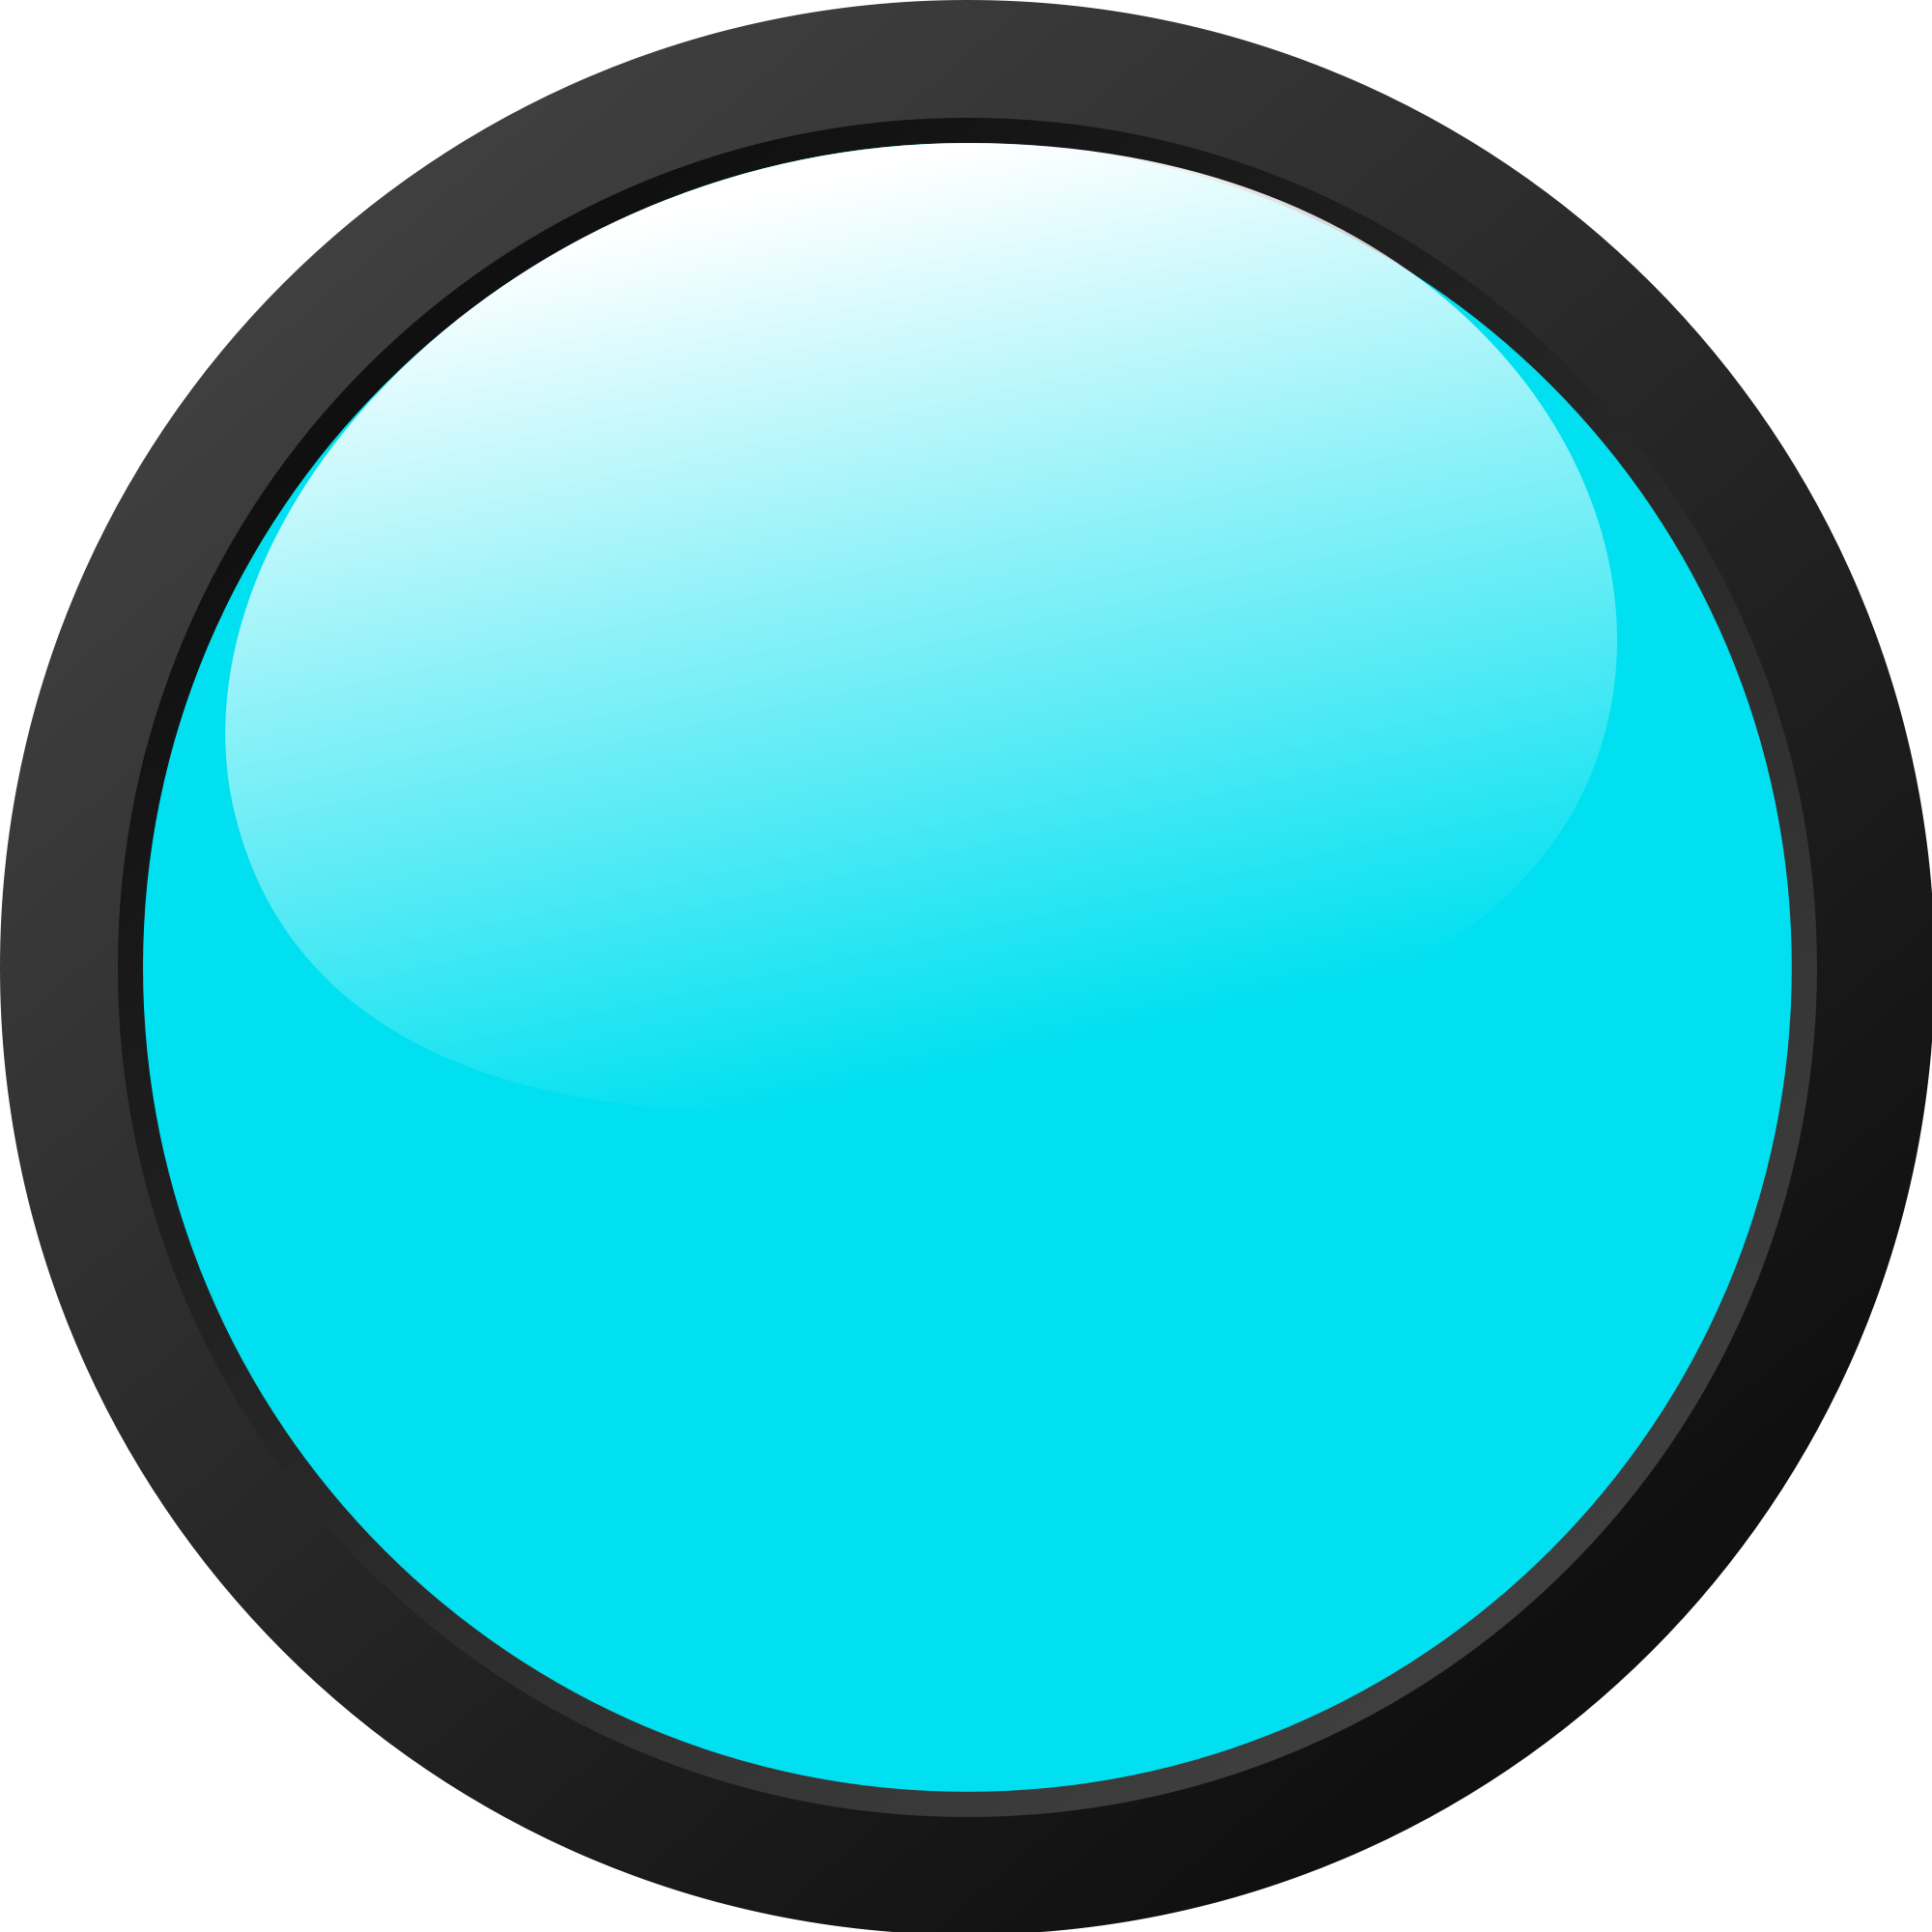 File:Cyan Light Icon.svg.